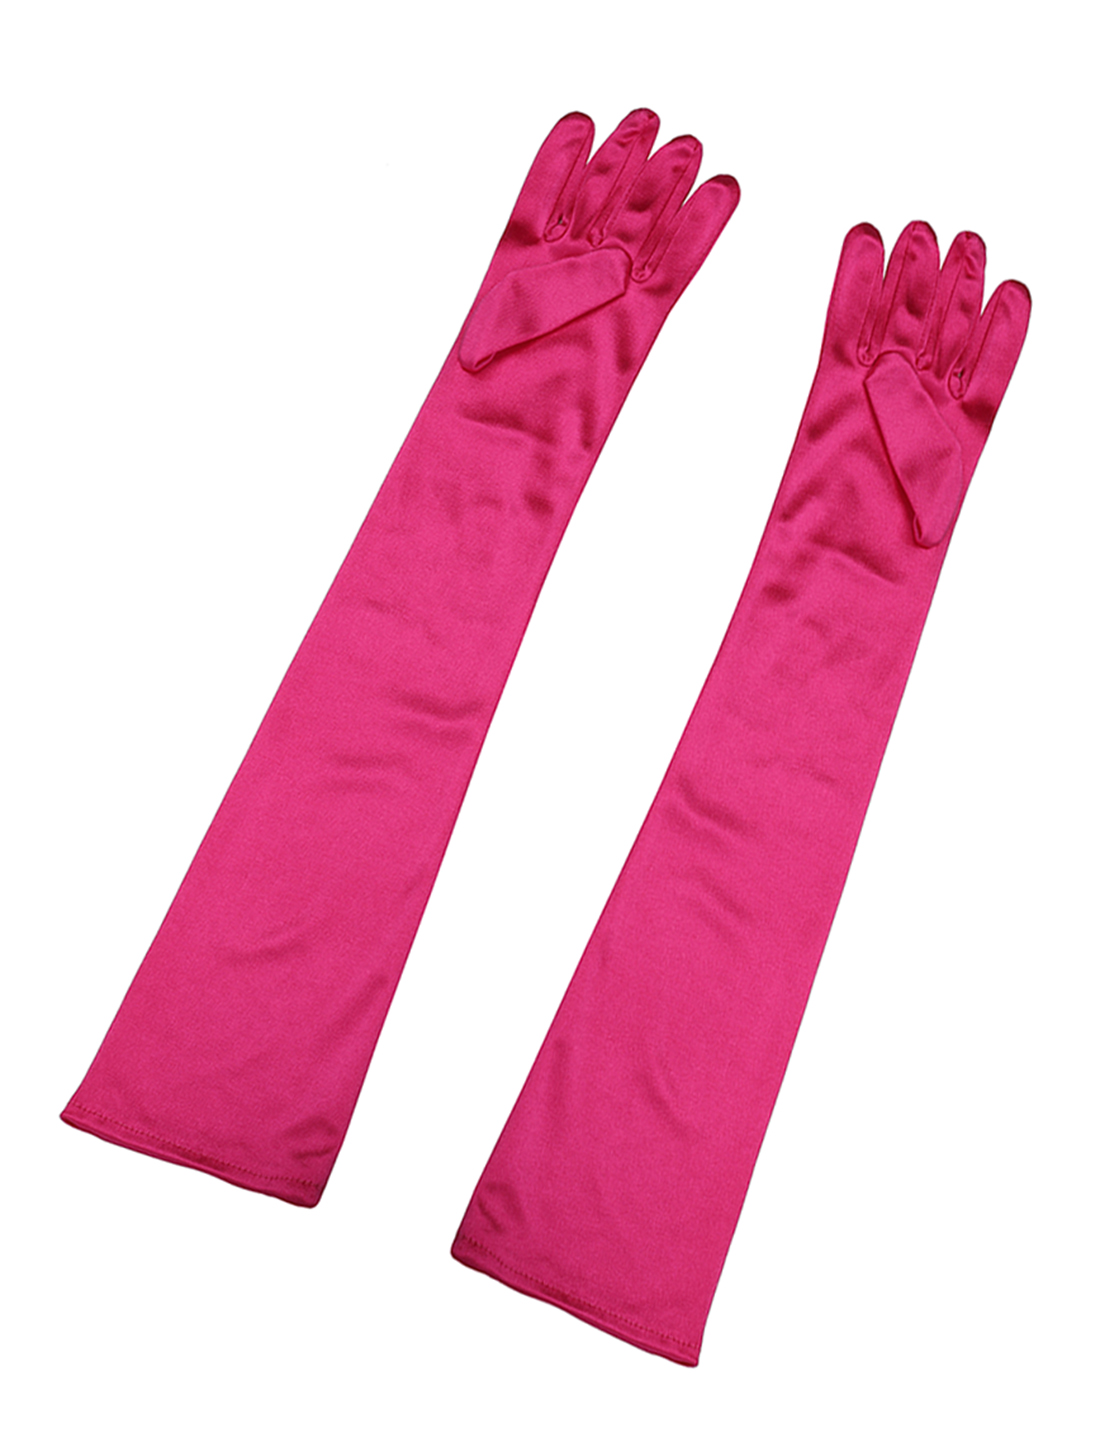 Women Shiny Stretchy Opera Length Full Finger Gloves Pair Fuchsia